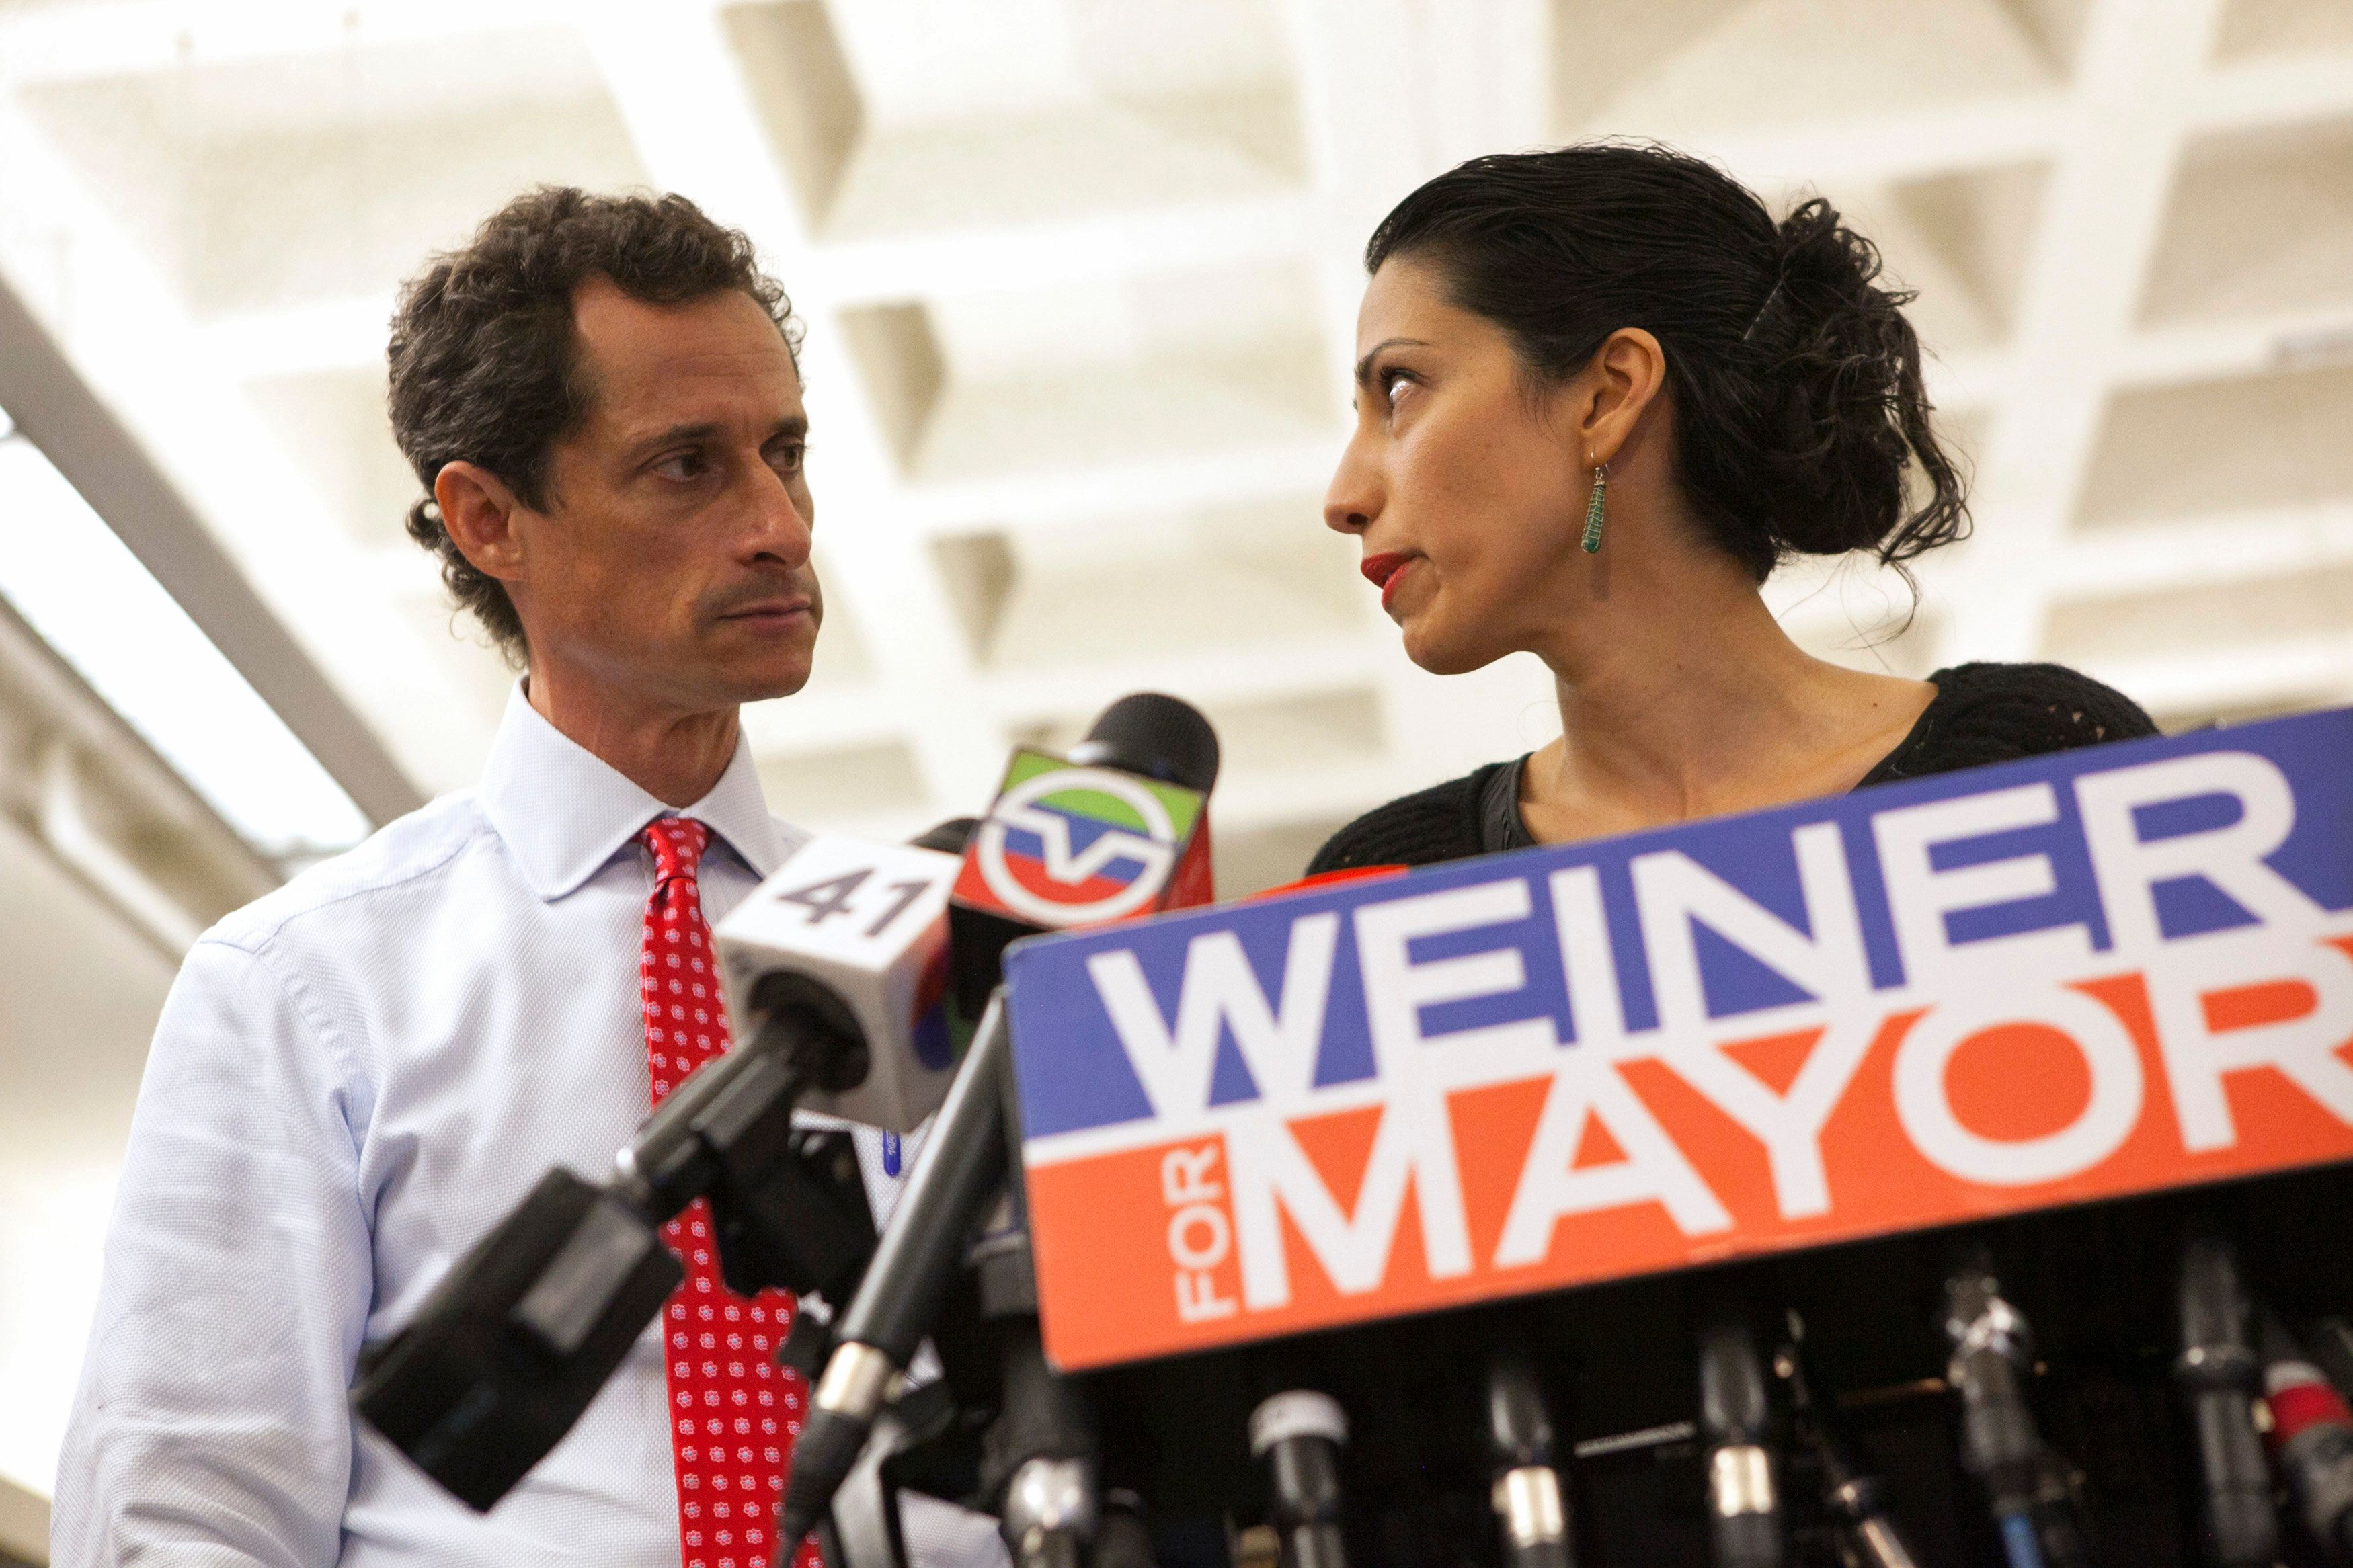 See Anthony Weiner and Huma Abedin Appear Together in Divorce Court